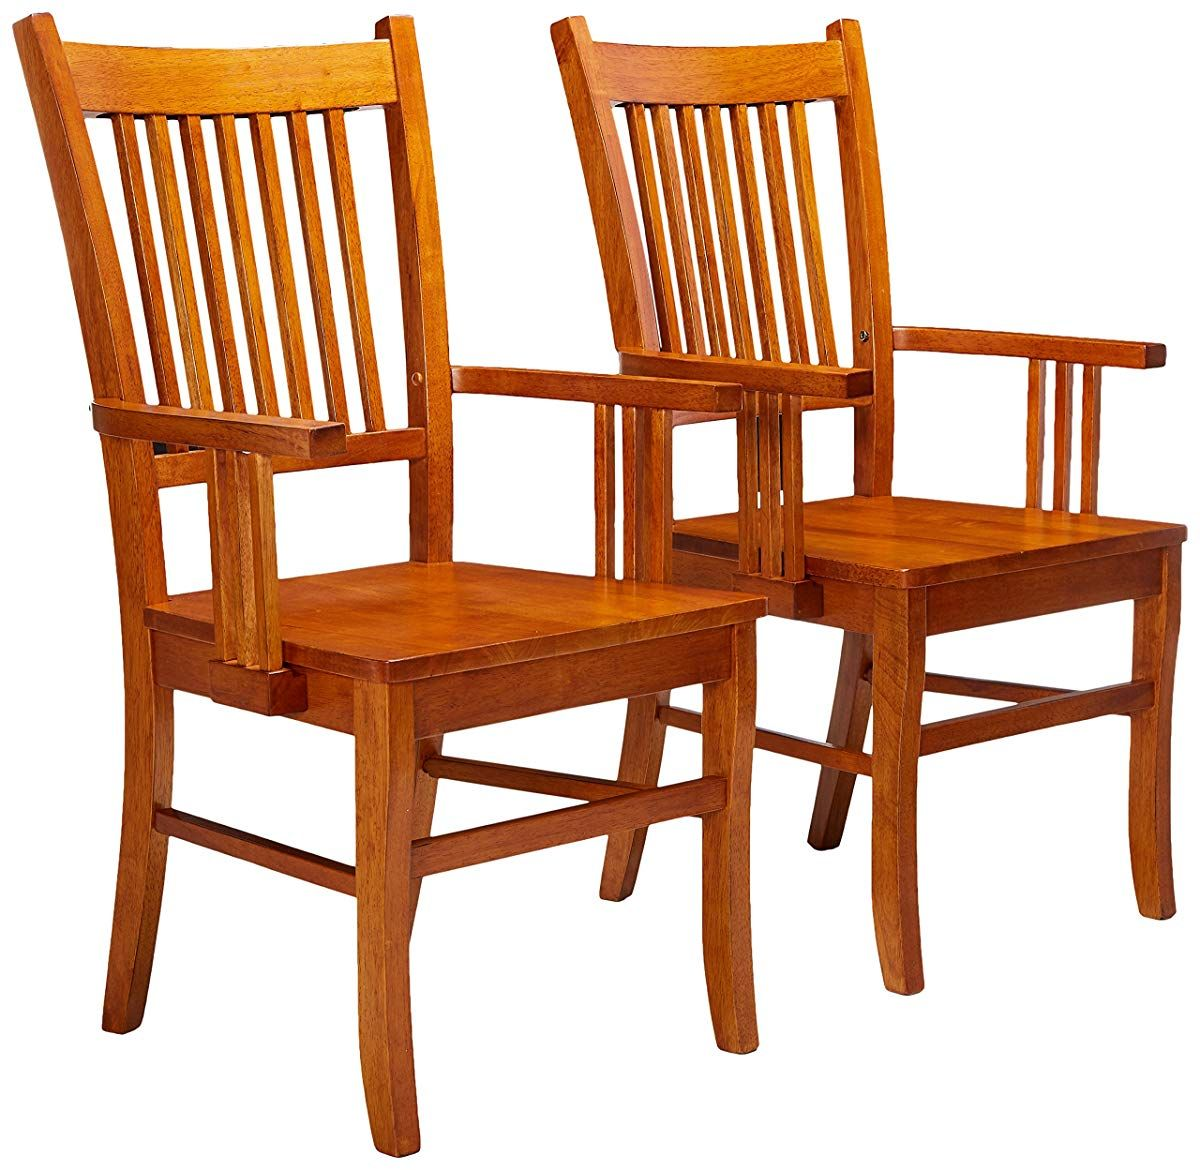 Dining arm chairs mission style medium brown finish